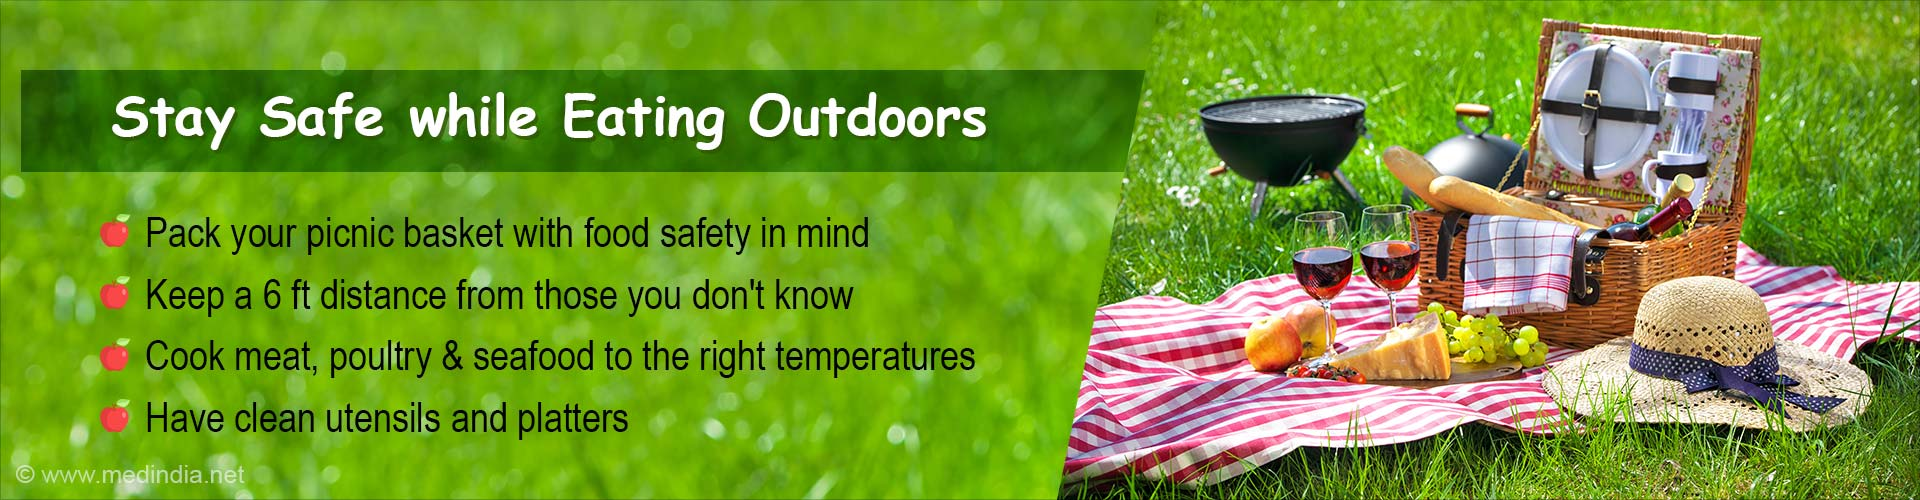 How to Stay Safe While Eating Outdoors During COVID-19